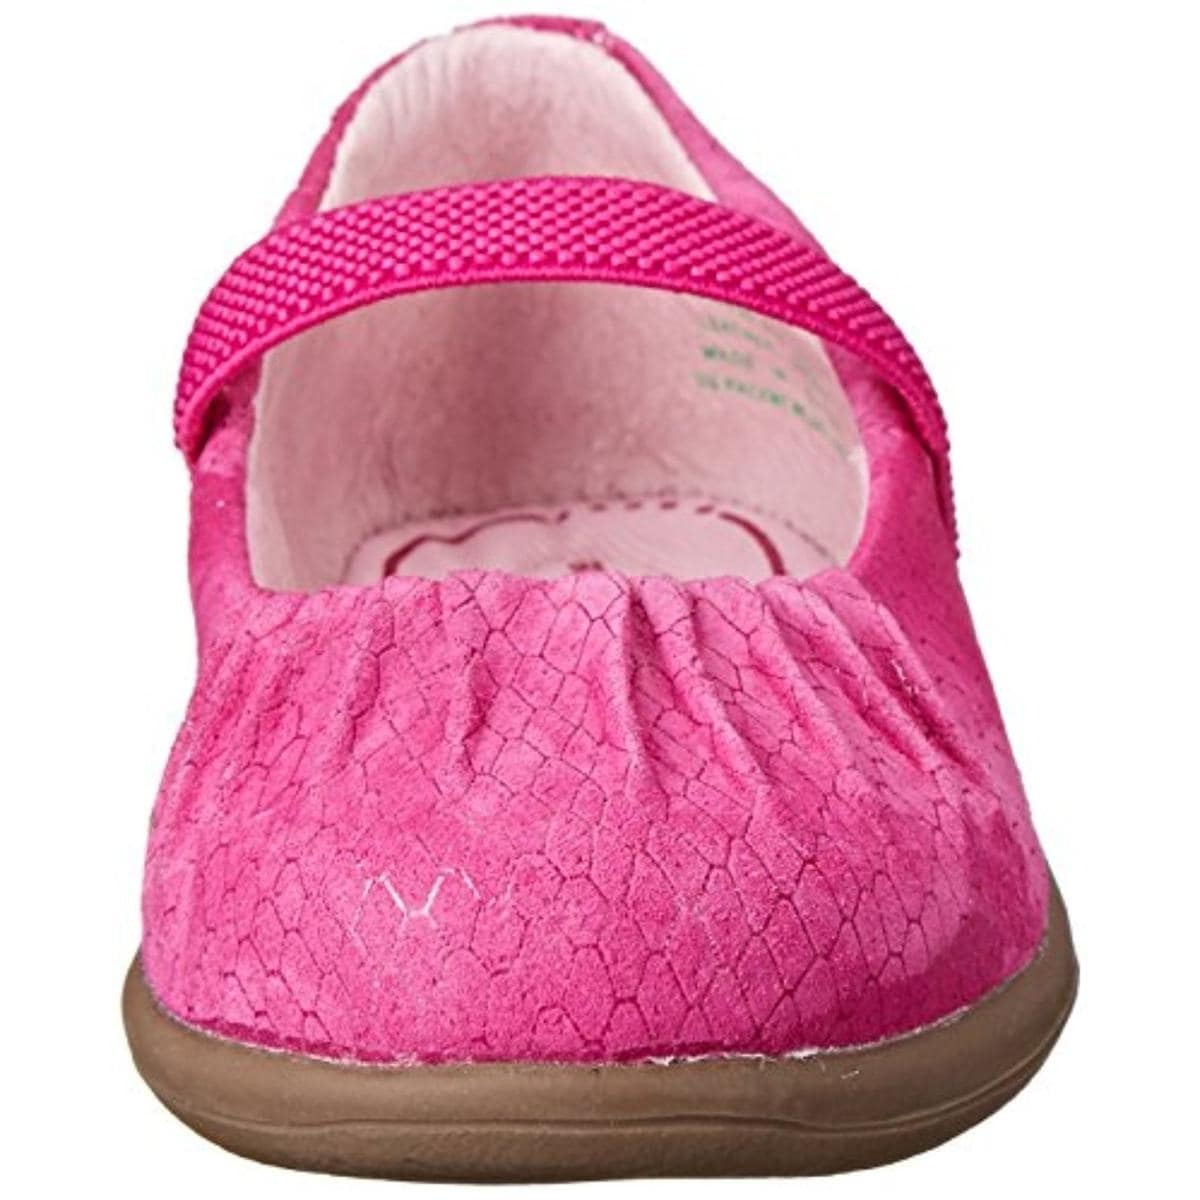 Stride rite girls cassie mary janes snake print leather free stride rite girls cassie mary janes snake print leather free shipping on orders over 45 overstock 19903907 nvjuhfo Images